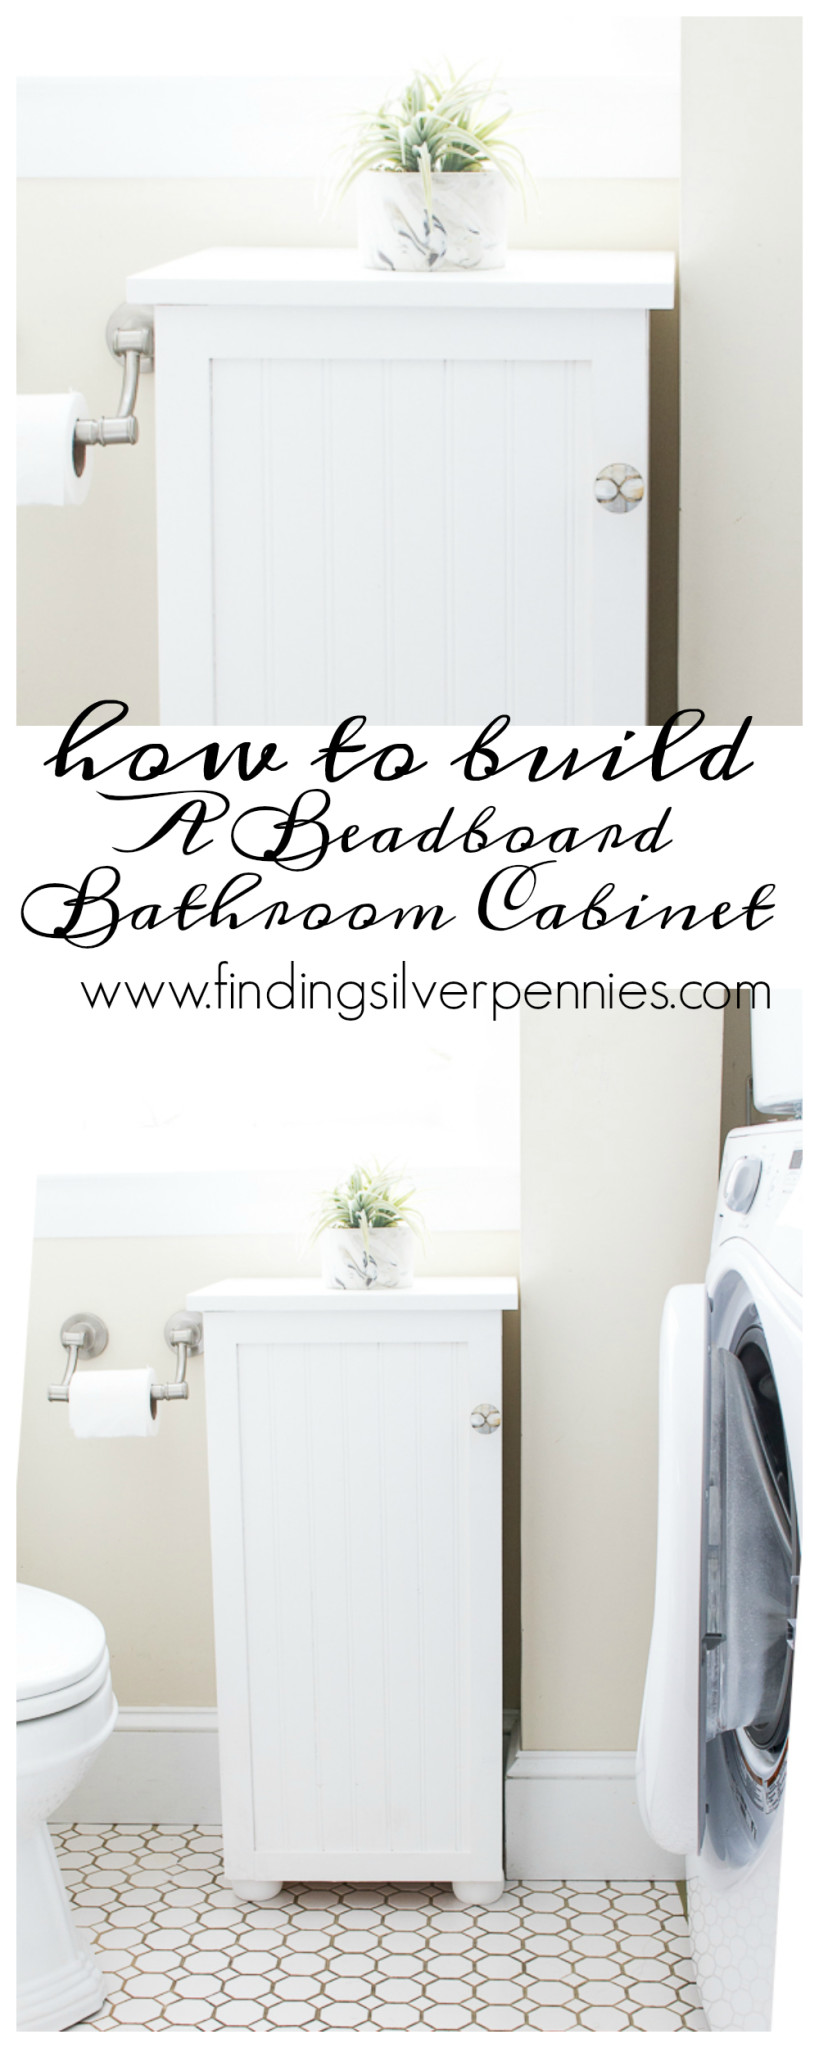 Beadboard Bathroom Cabinet (Build Plans) - Finding Silver Pennies